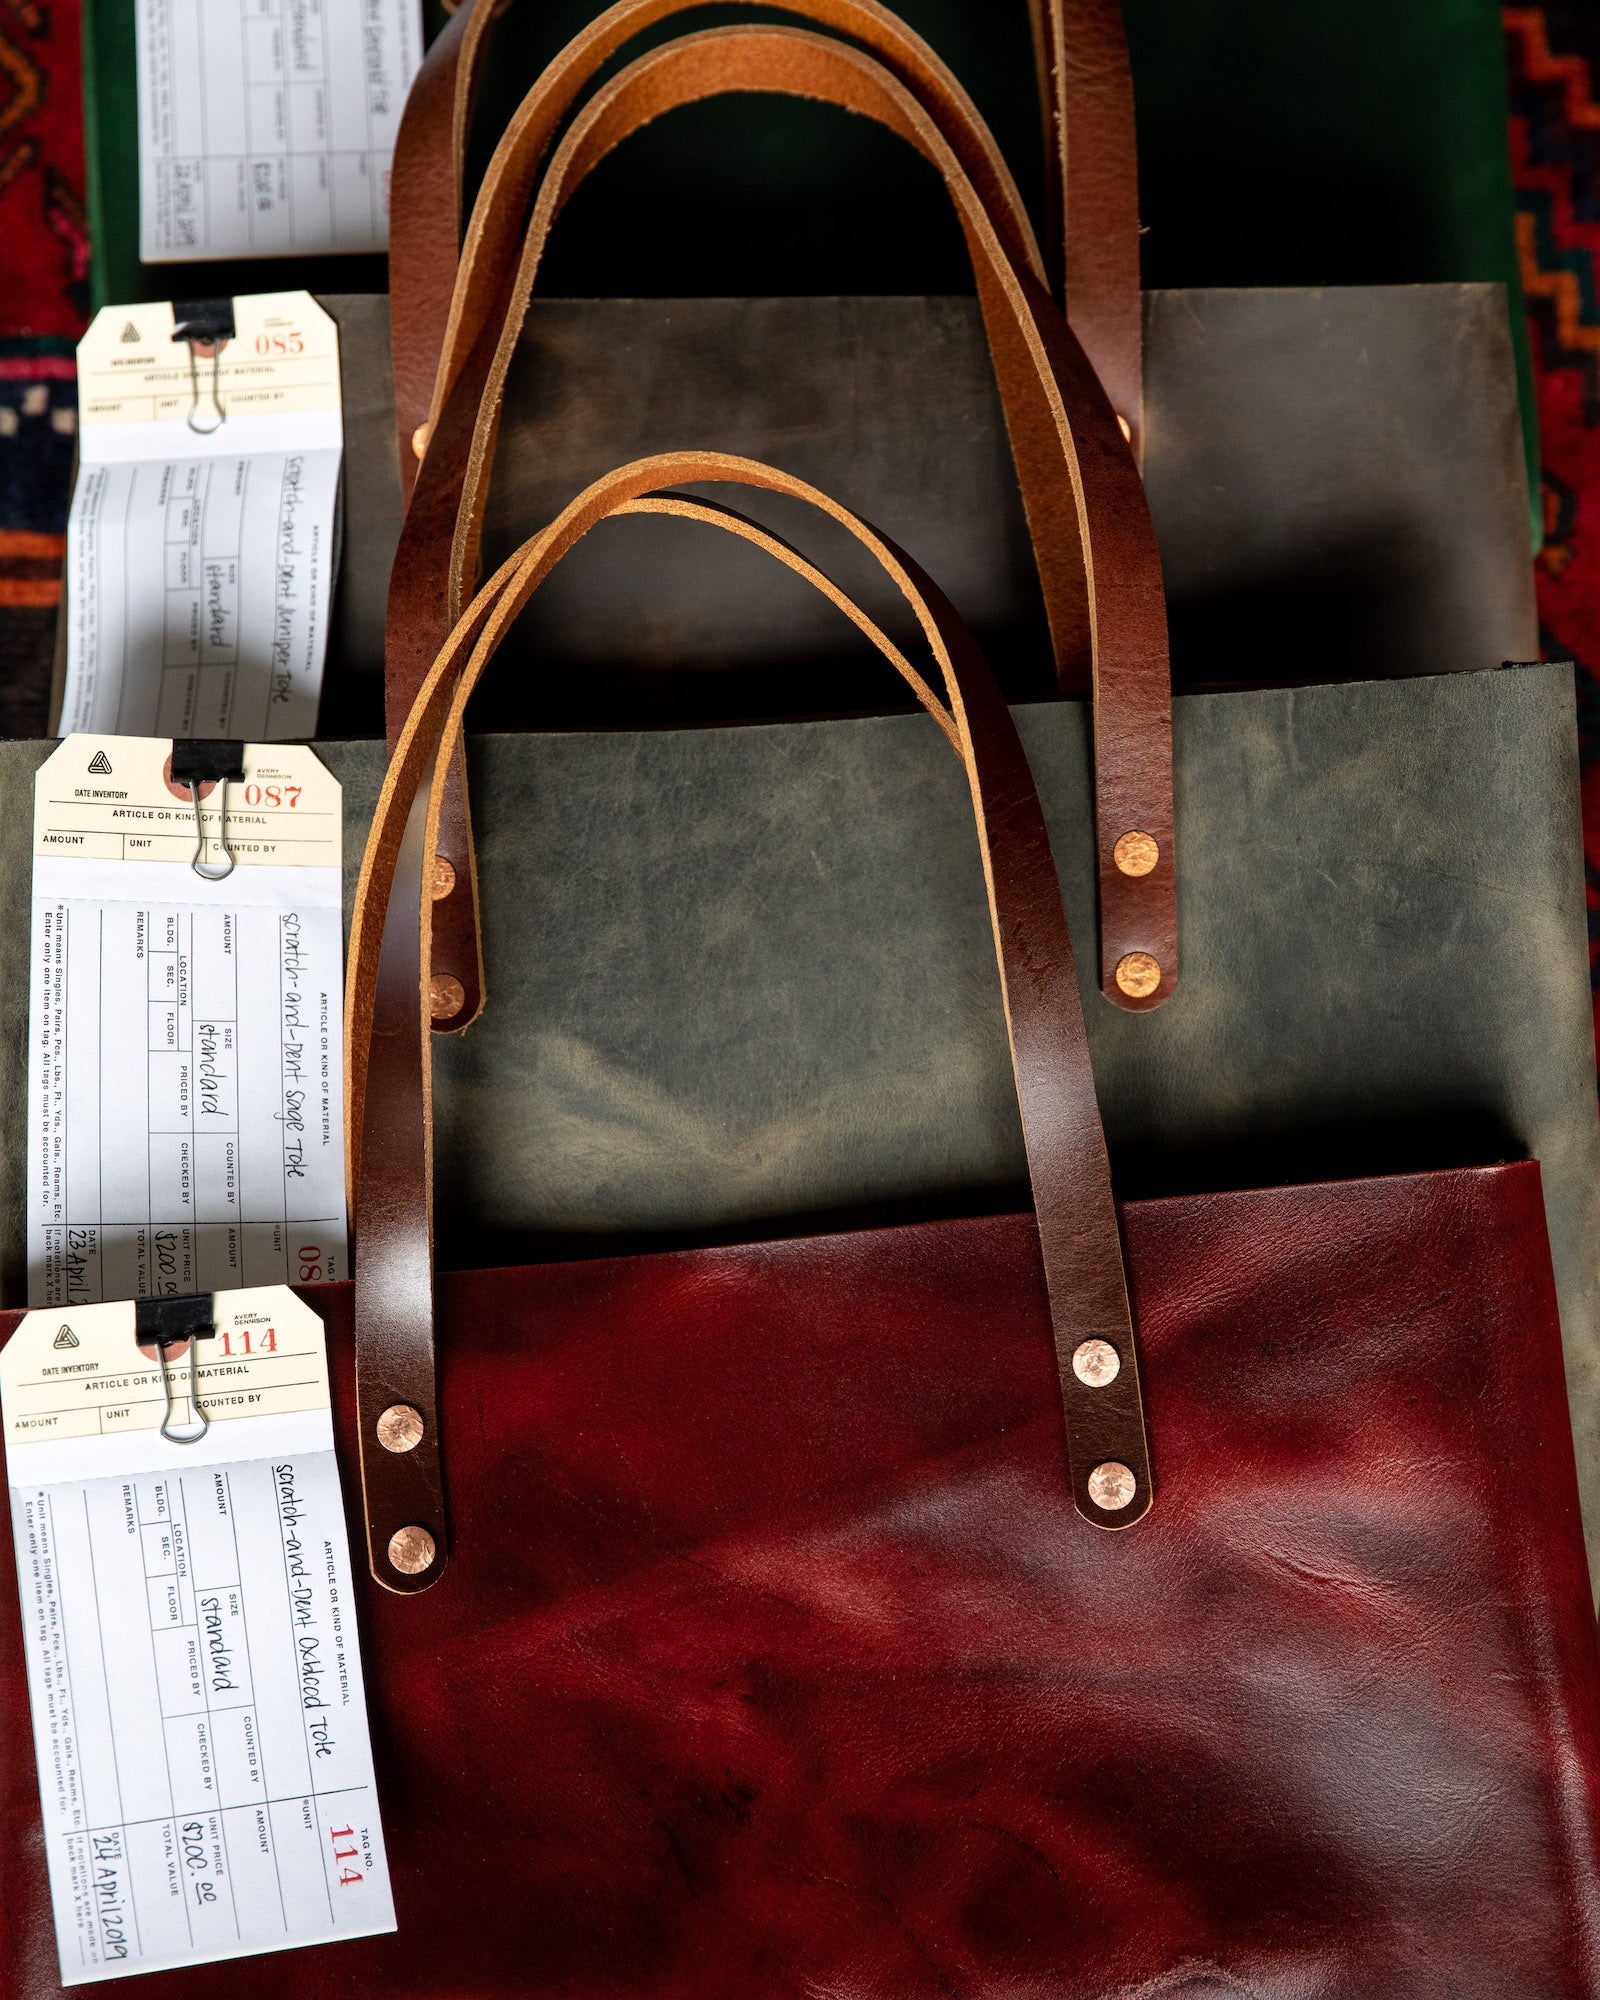 Scratch-and-dent leather tote bags